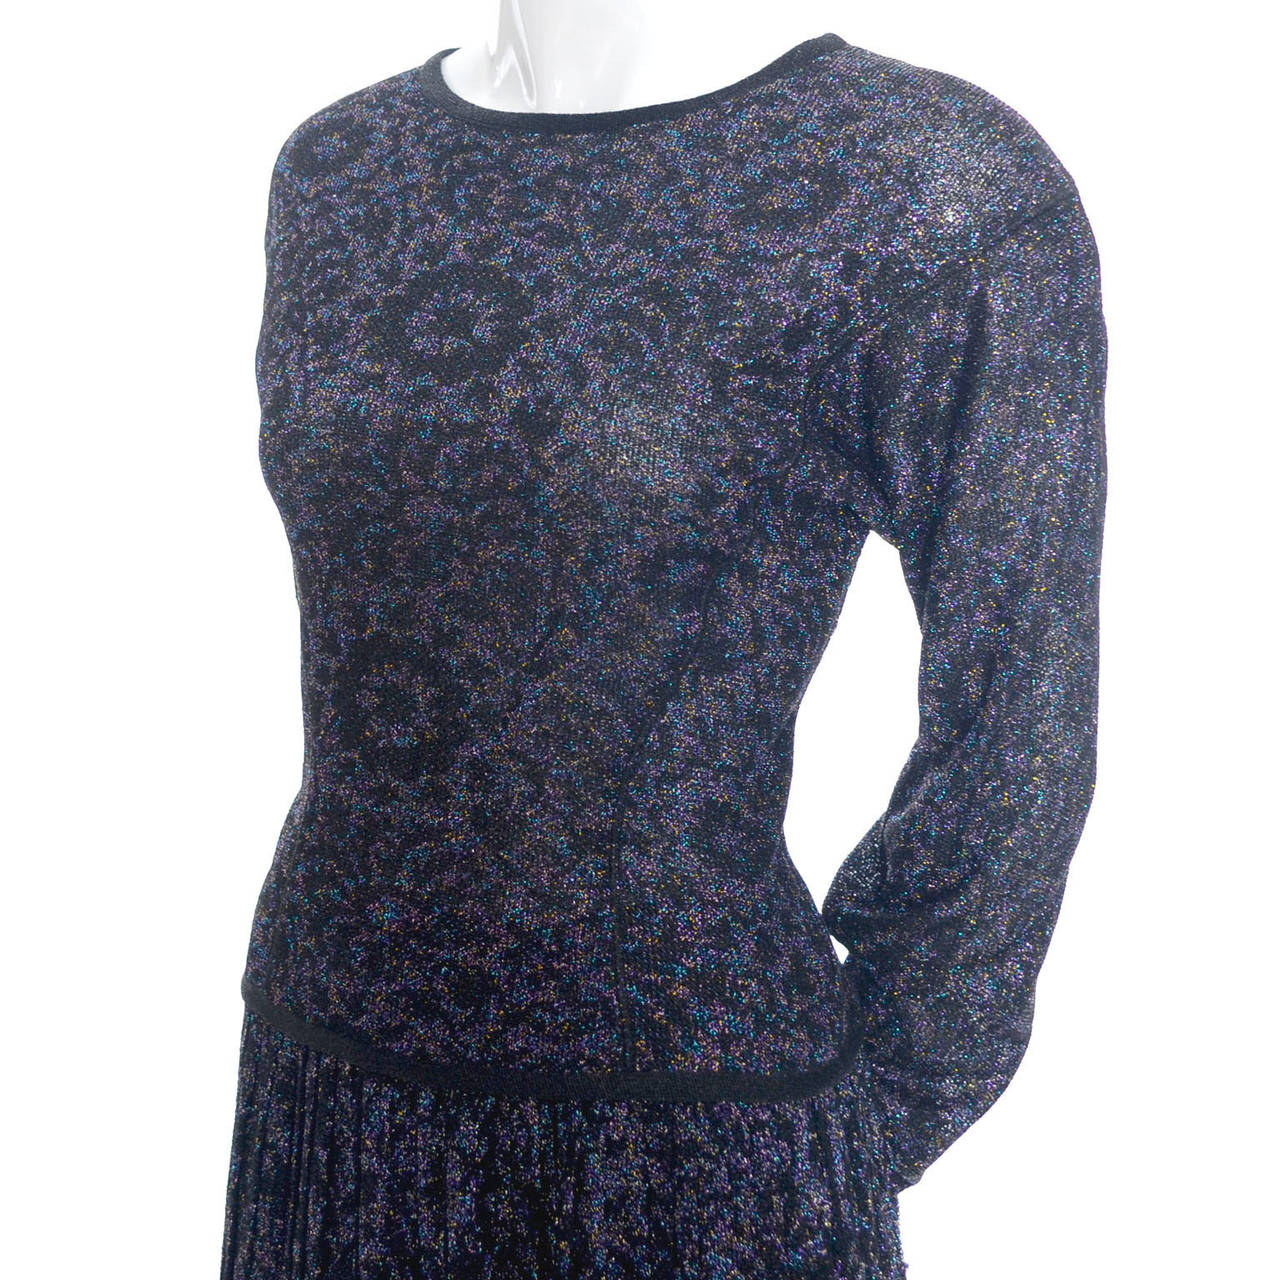 Missoni Metallic Sparkle Vintage Skirt Top Evening Outfit Saks Fifth Avenue In Excellent Condition For Sale In Portland, OR